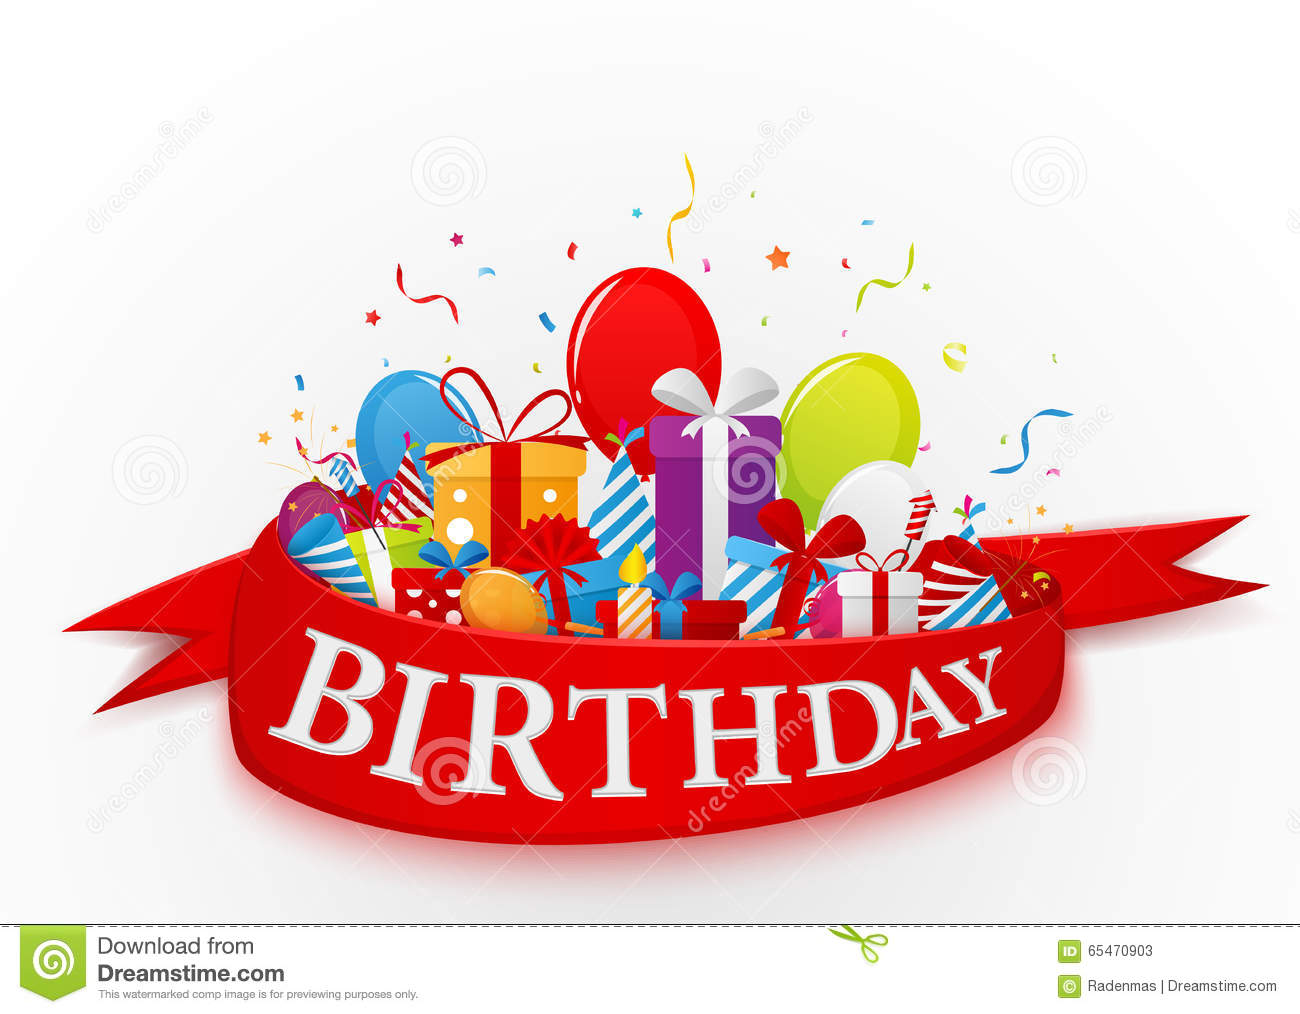 Birthday Celebration Background With Party Elements Stock Vector - Image: 65470903